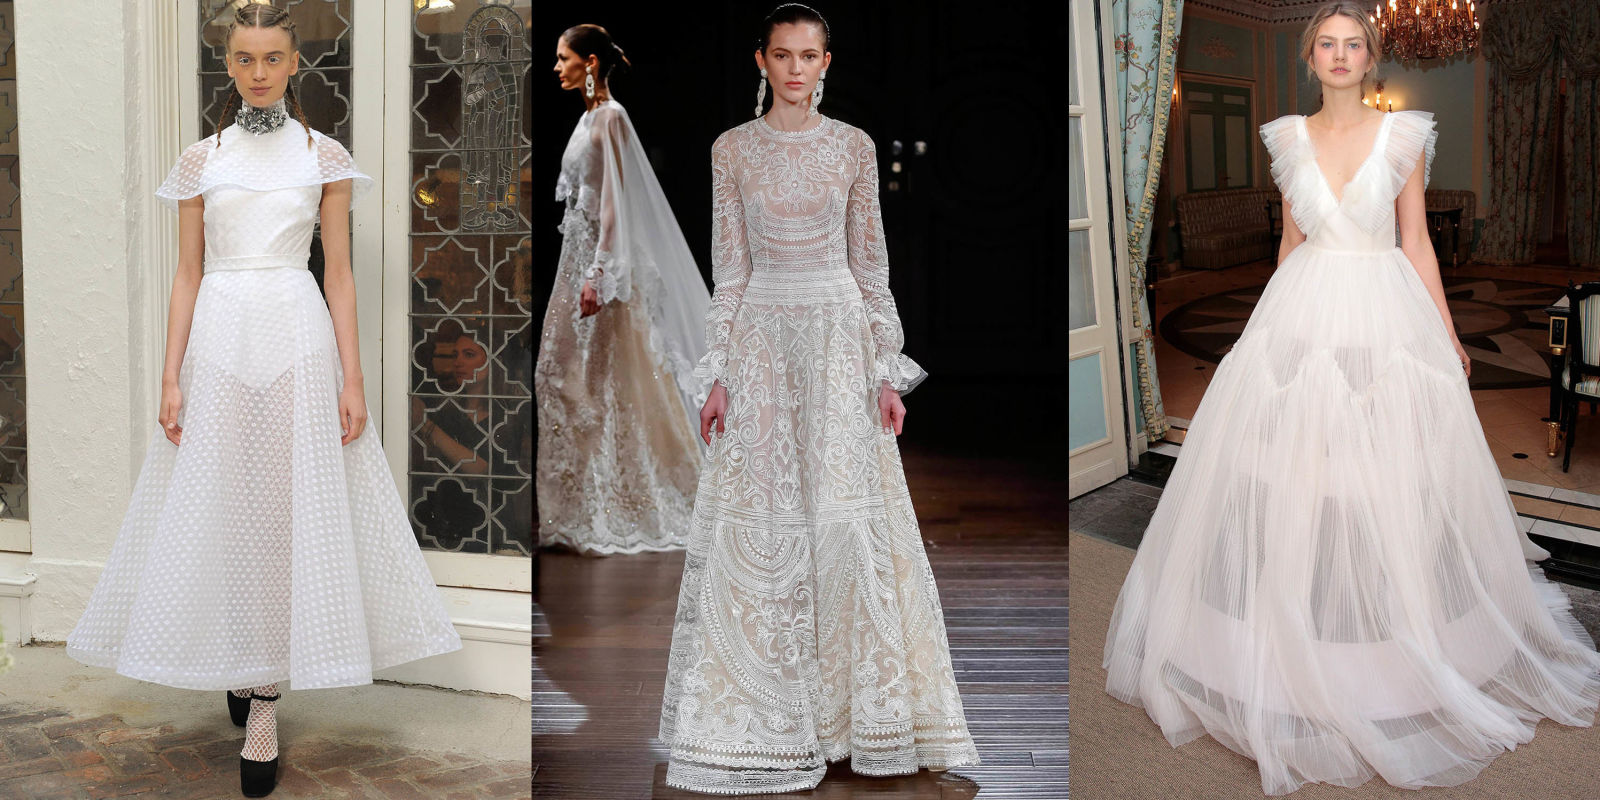 Simple Wedding Dresses 2017 Trends And Ideas: Spring 2017 Wedding Trends